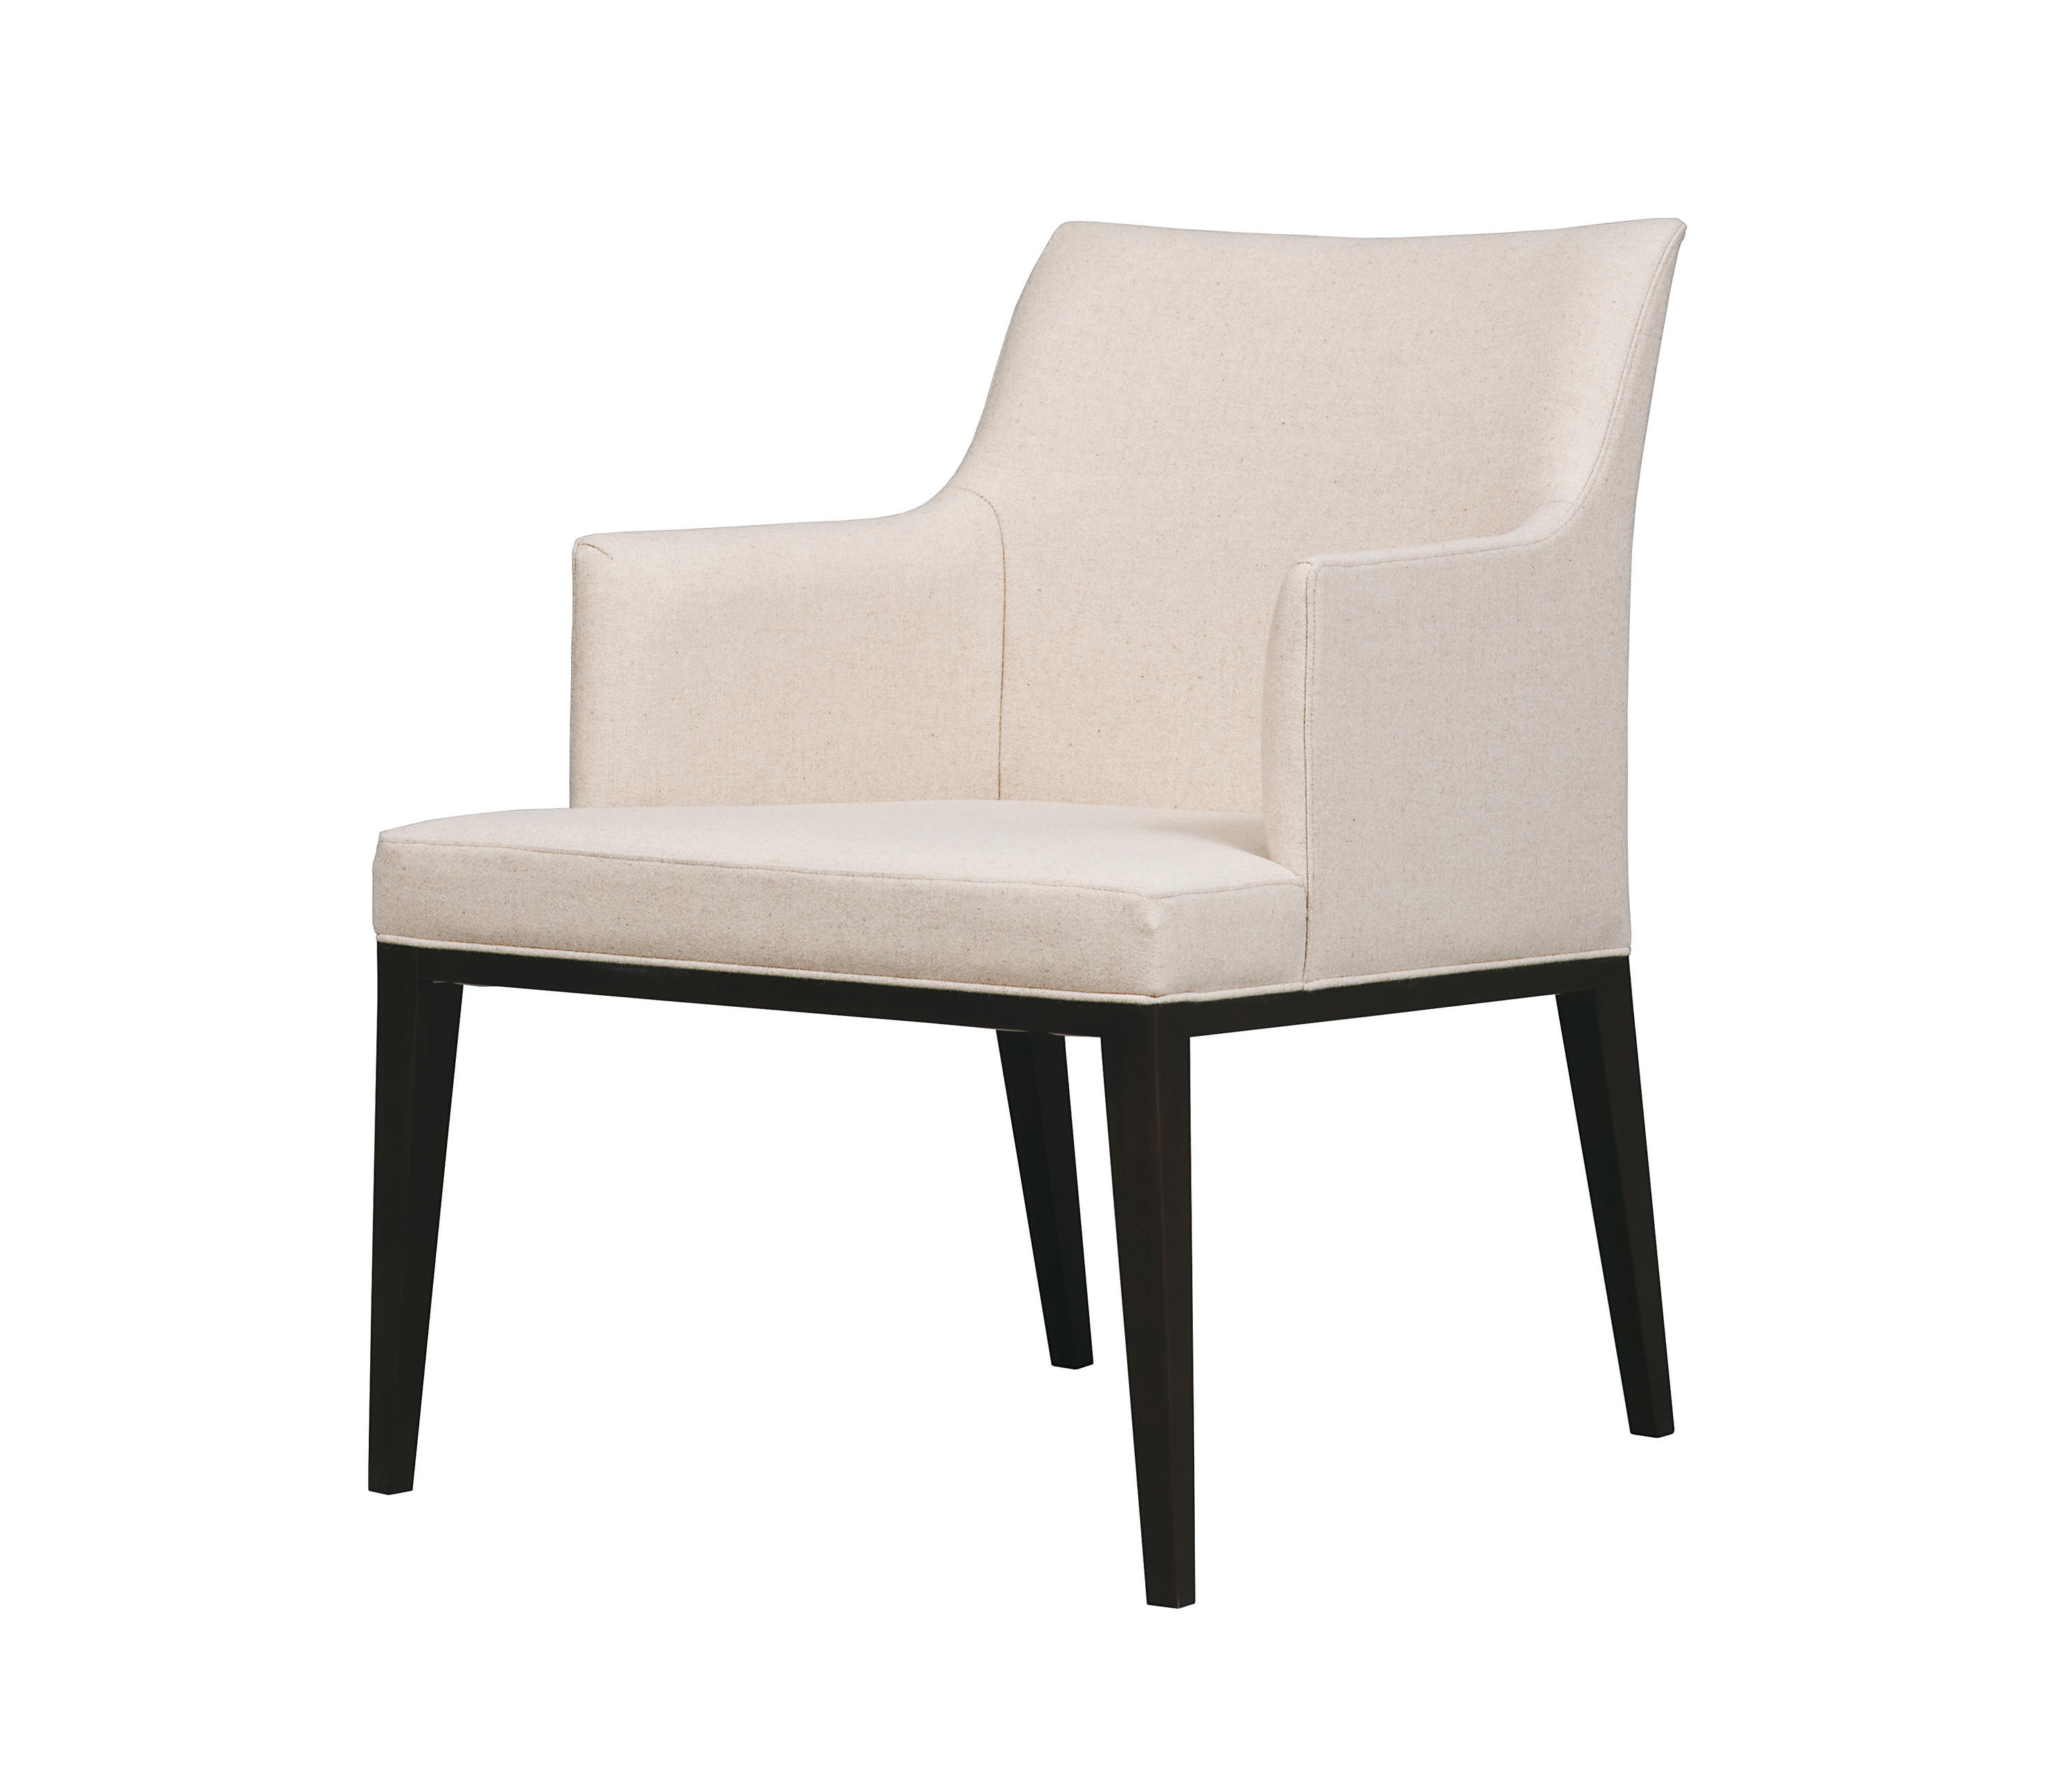 LEONE Lounge chairs from Time & Style